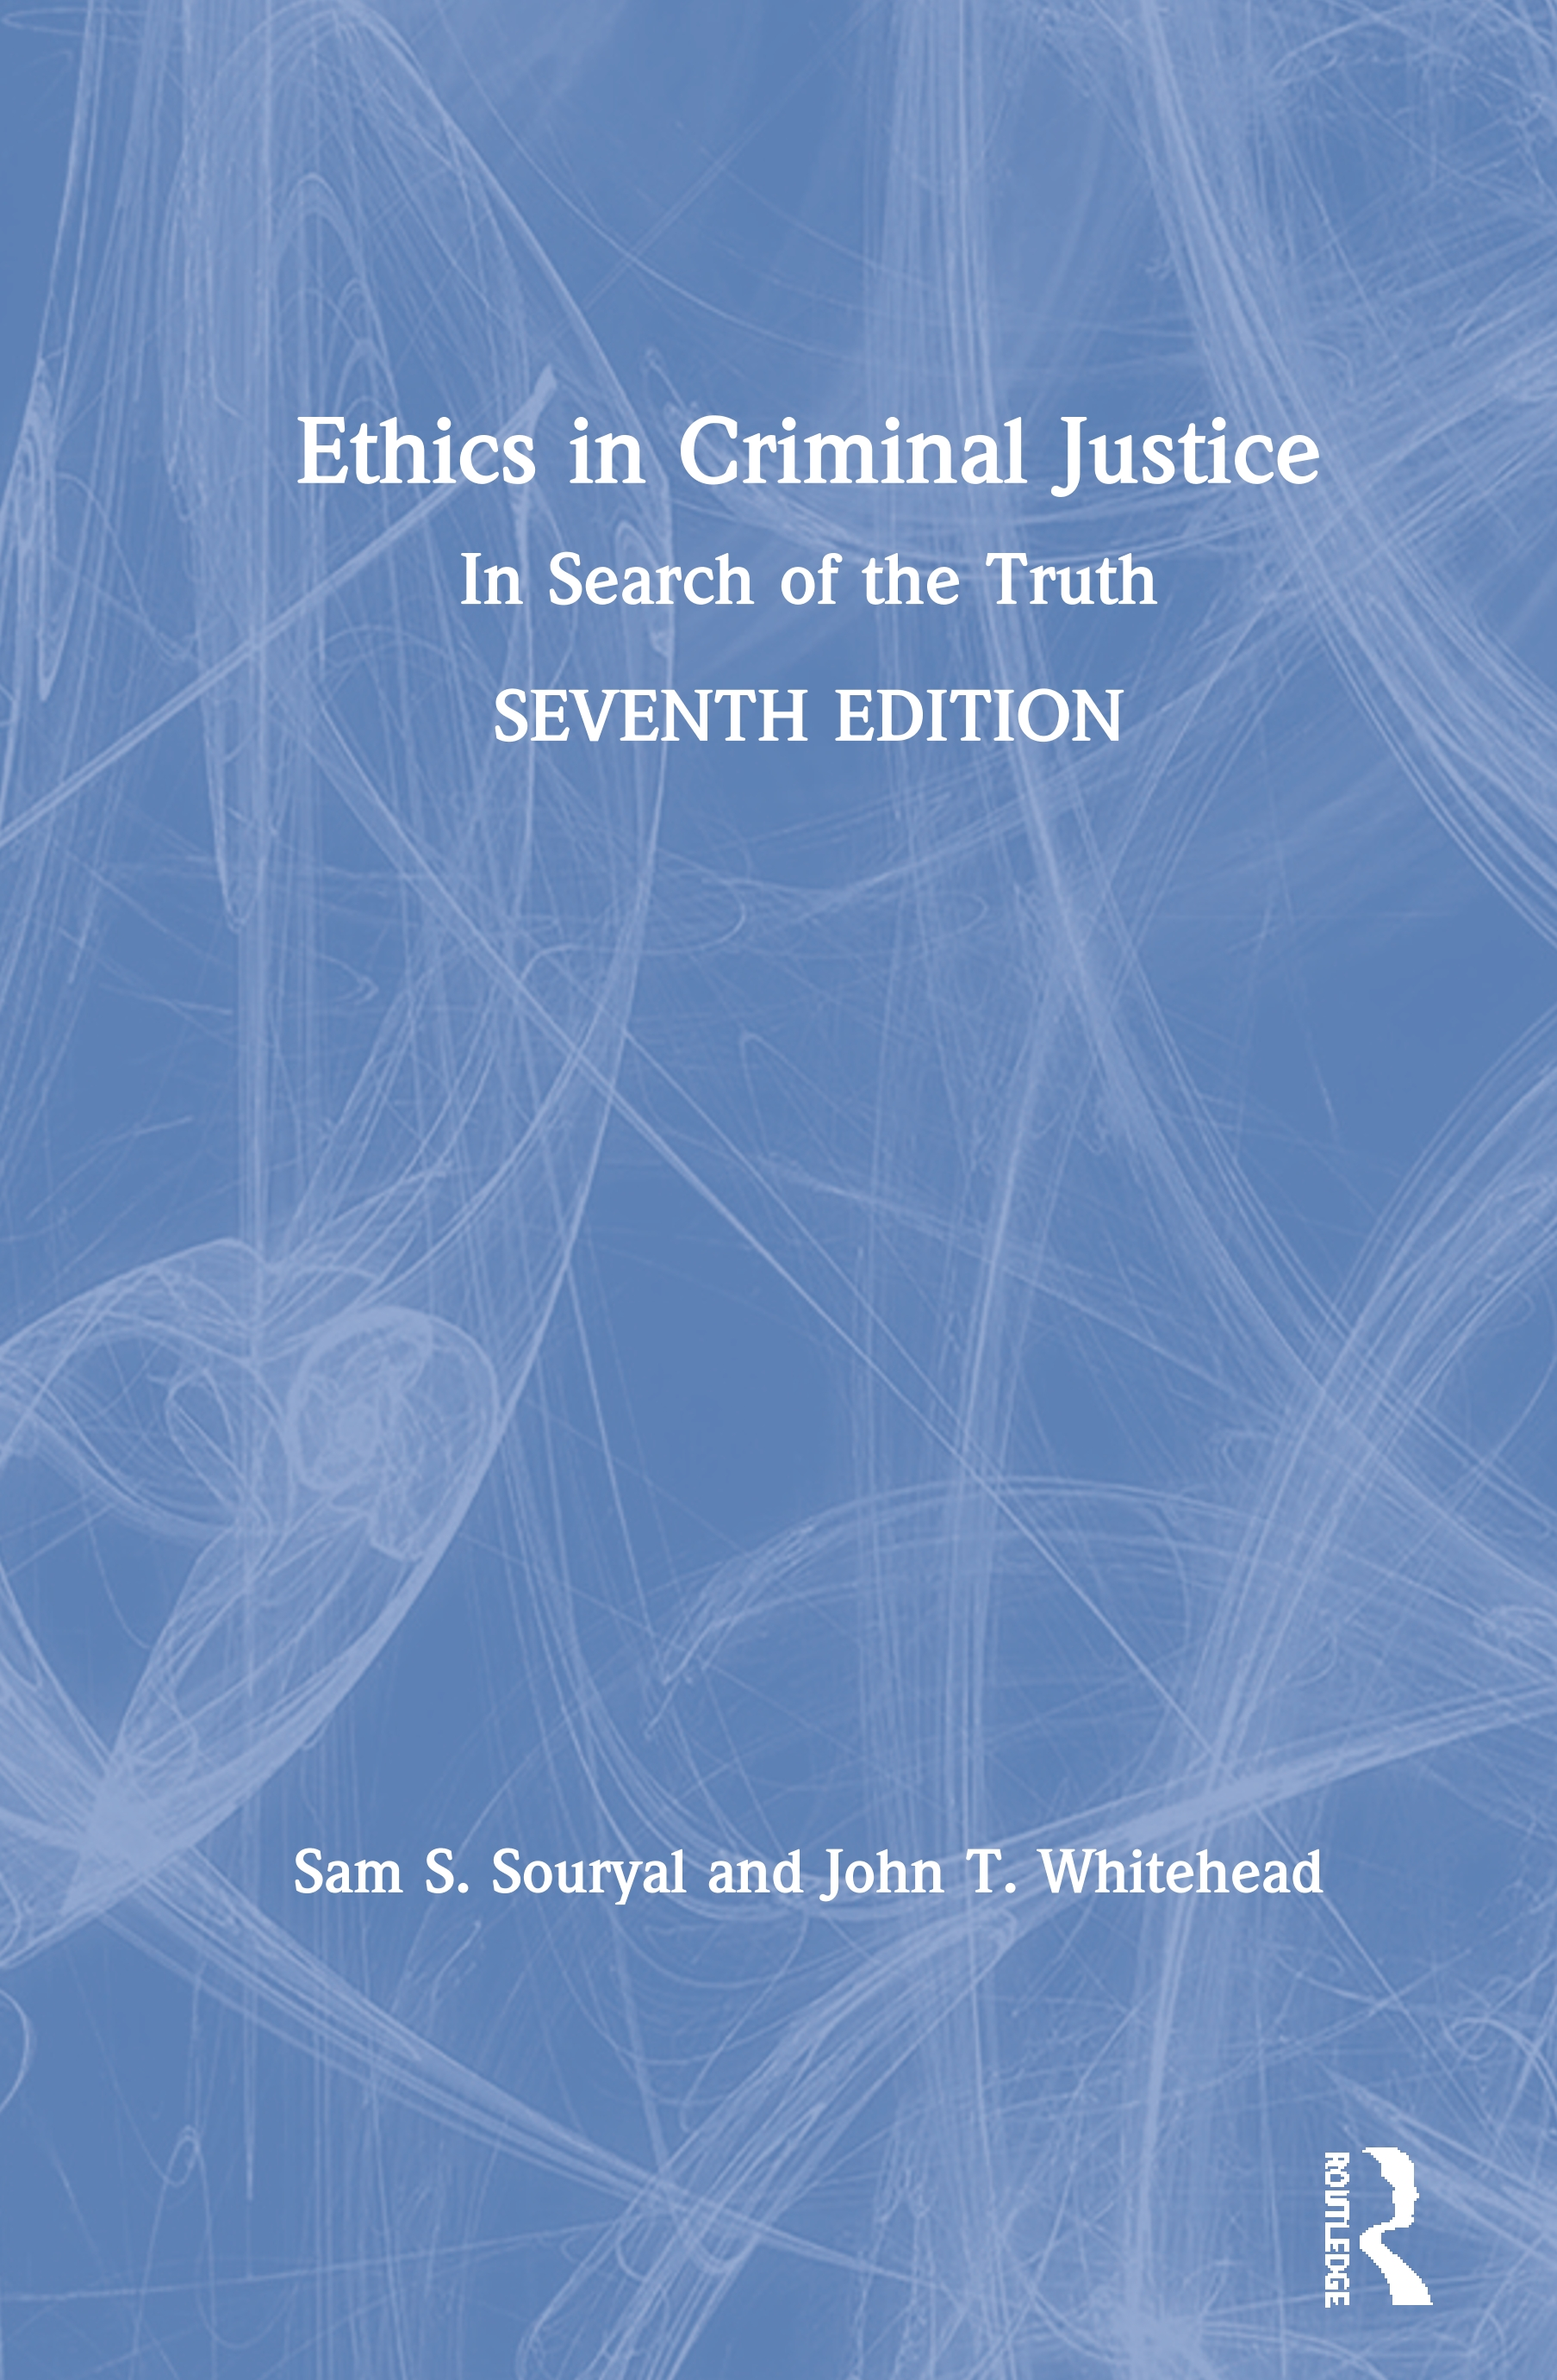 Ethics in Criminal Justice: In Search of the Truth book cover